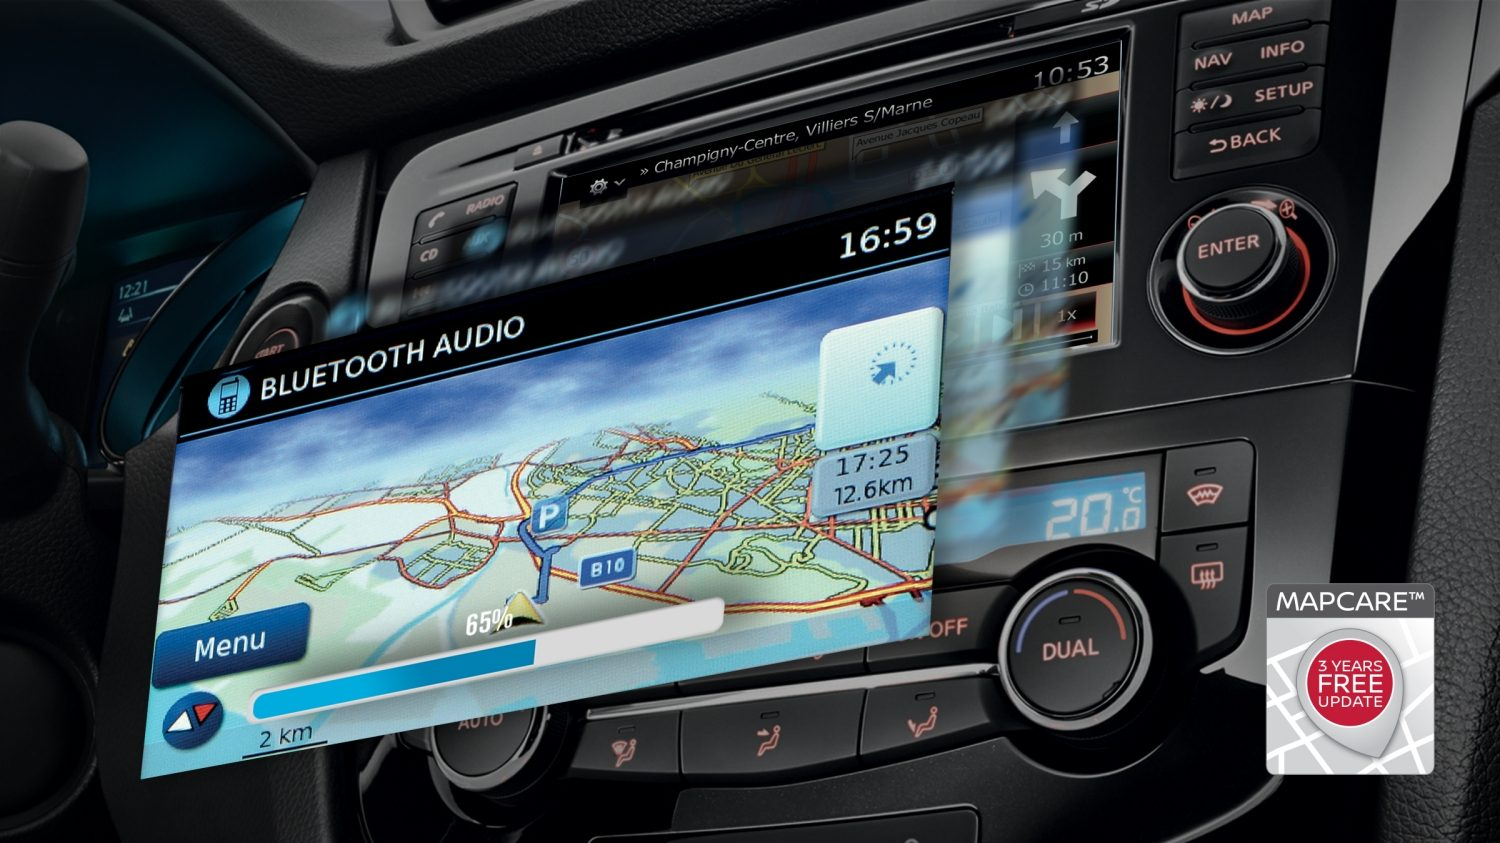 Nissan QASHQAI - NissanConnect mobile apps